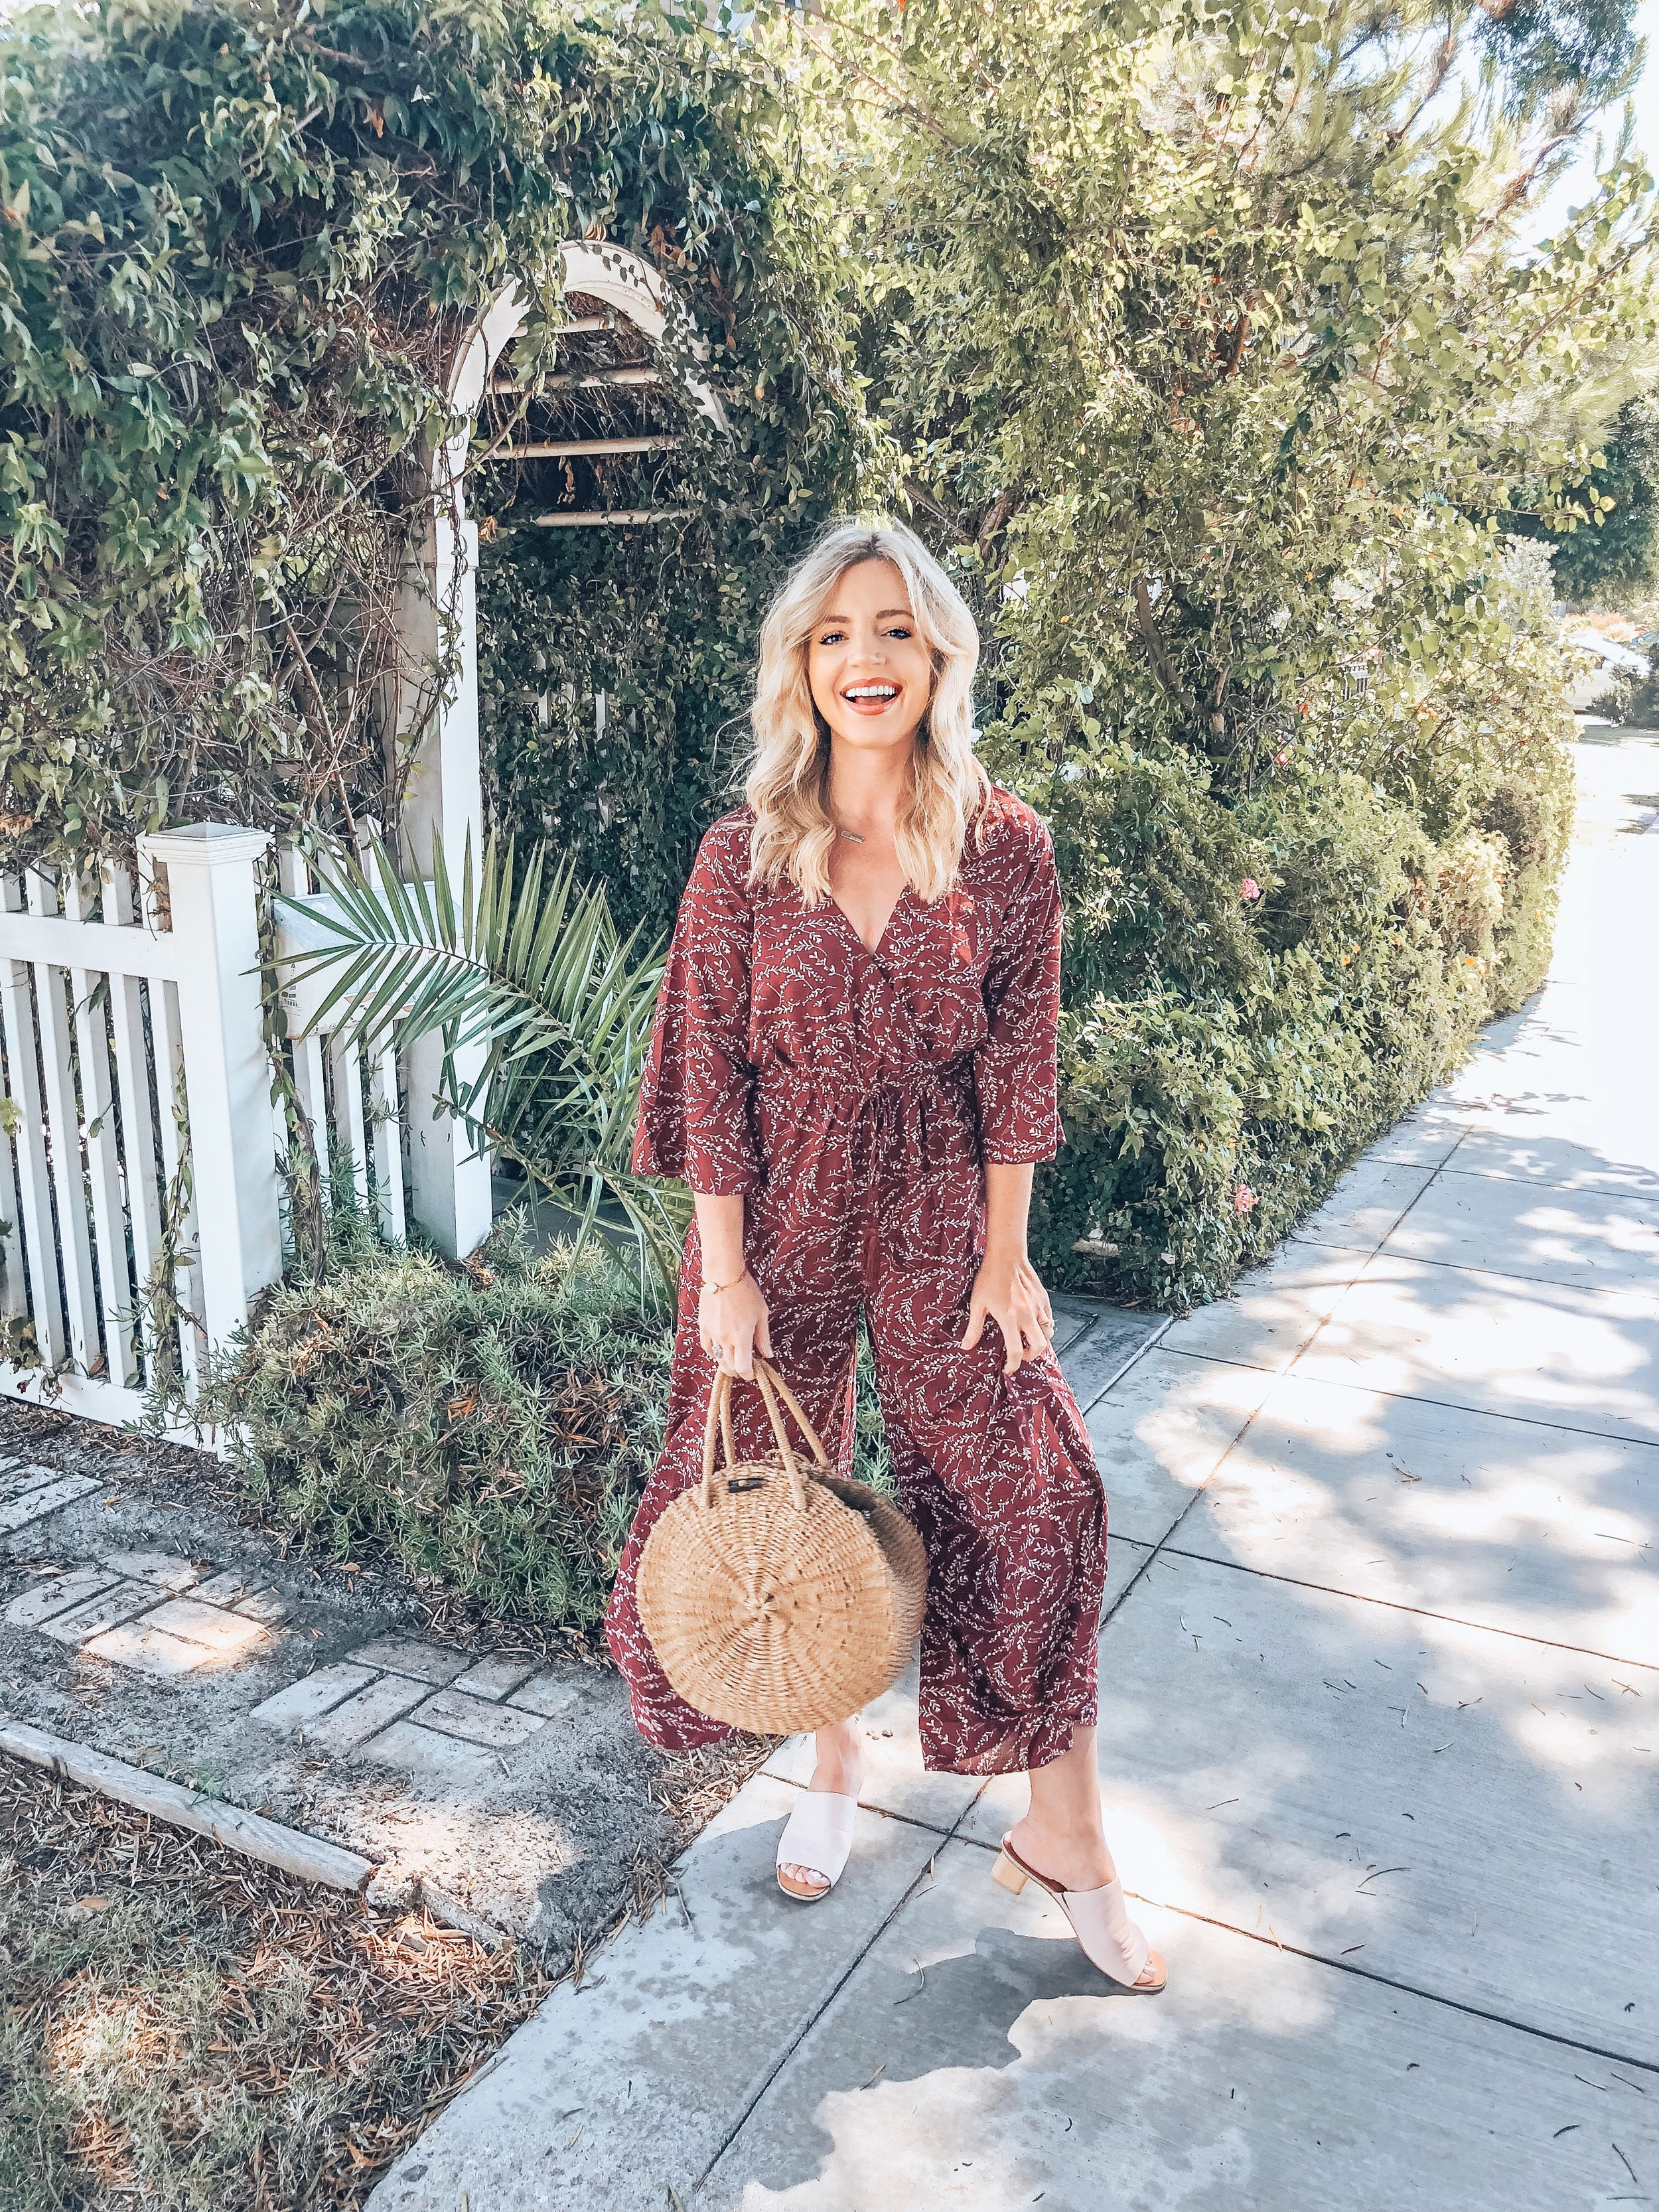 The Drew Jumpsuit: - This jumpsuit has been one of my go-to outfits recently. I have dressed it up, dressed it down, and have worn it to so many different types of occasions. It is still in stock in all sizes (here)! I am wearing a size small.